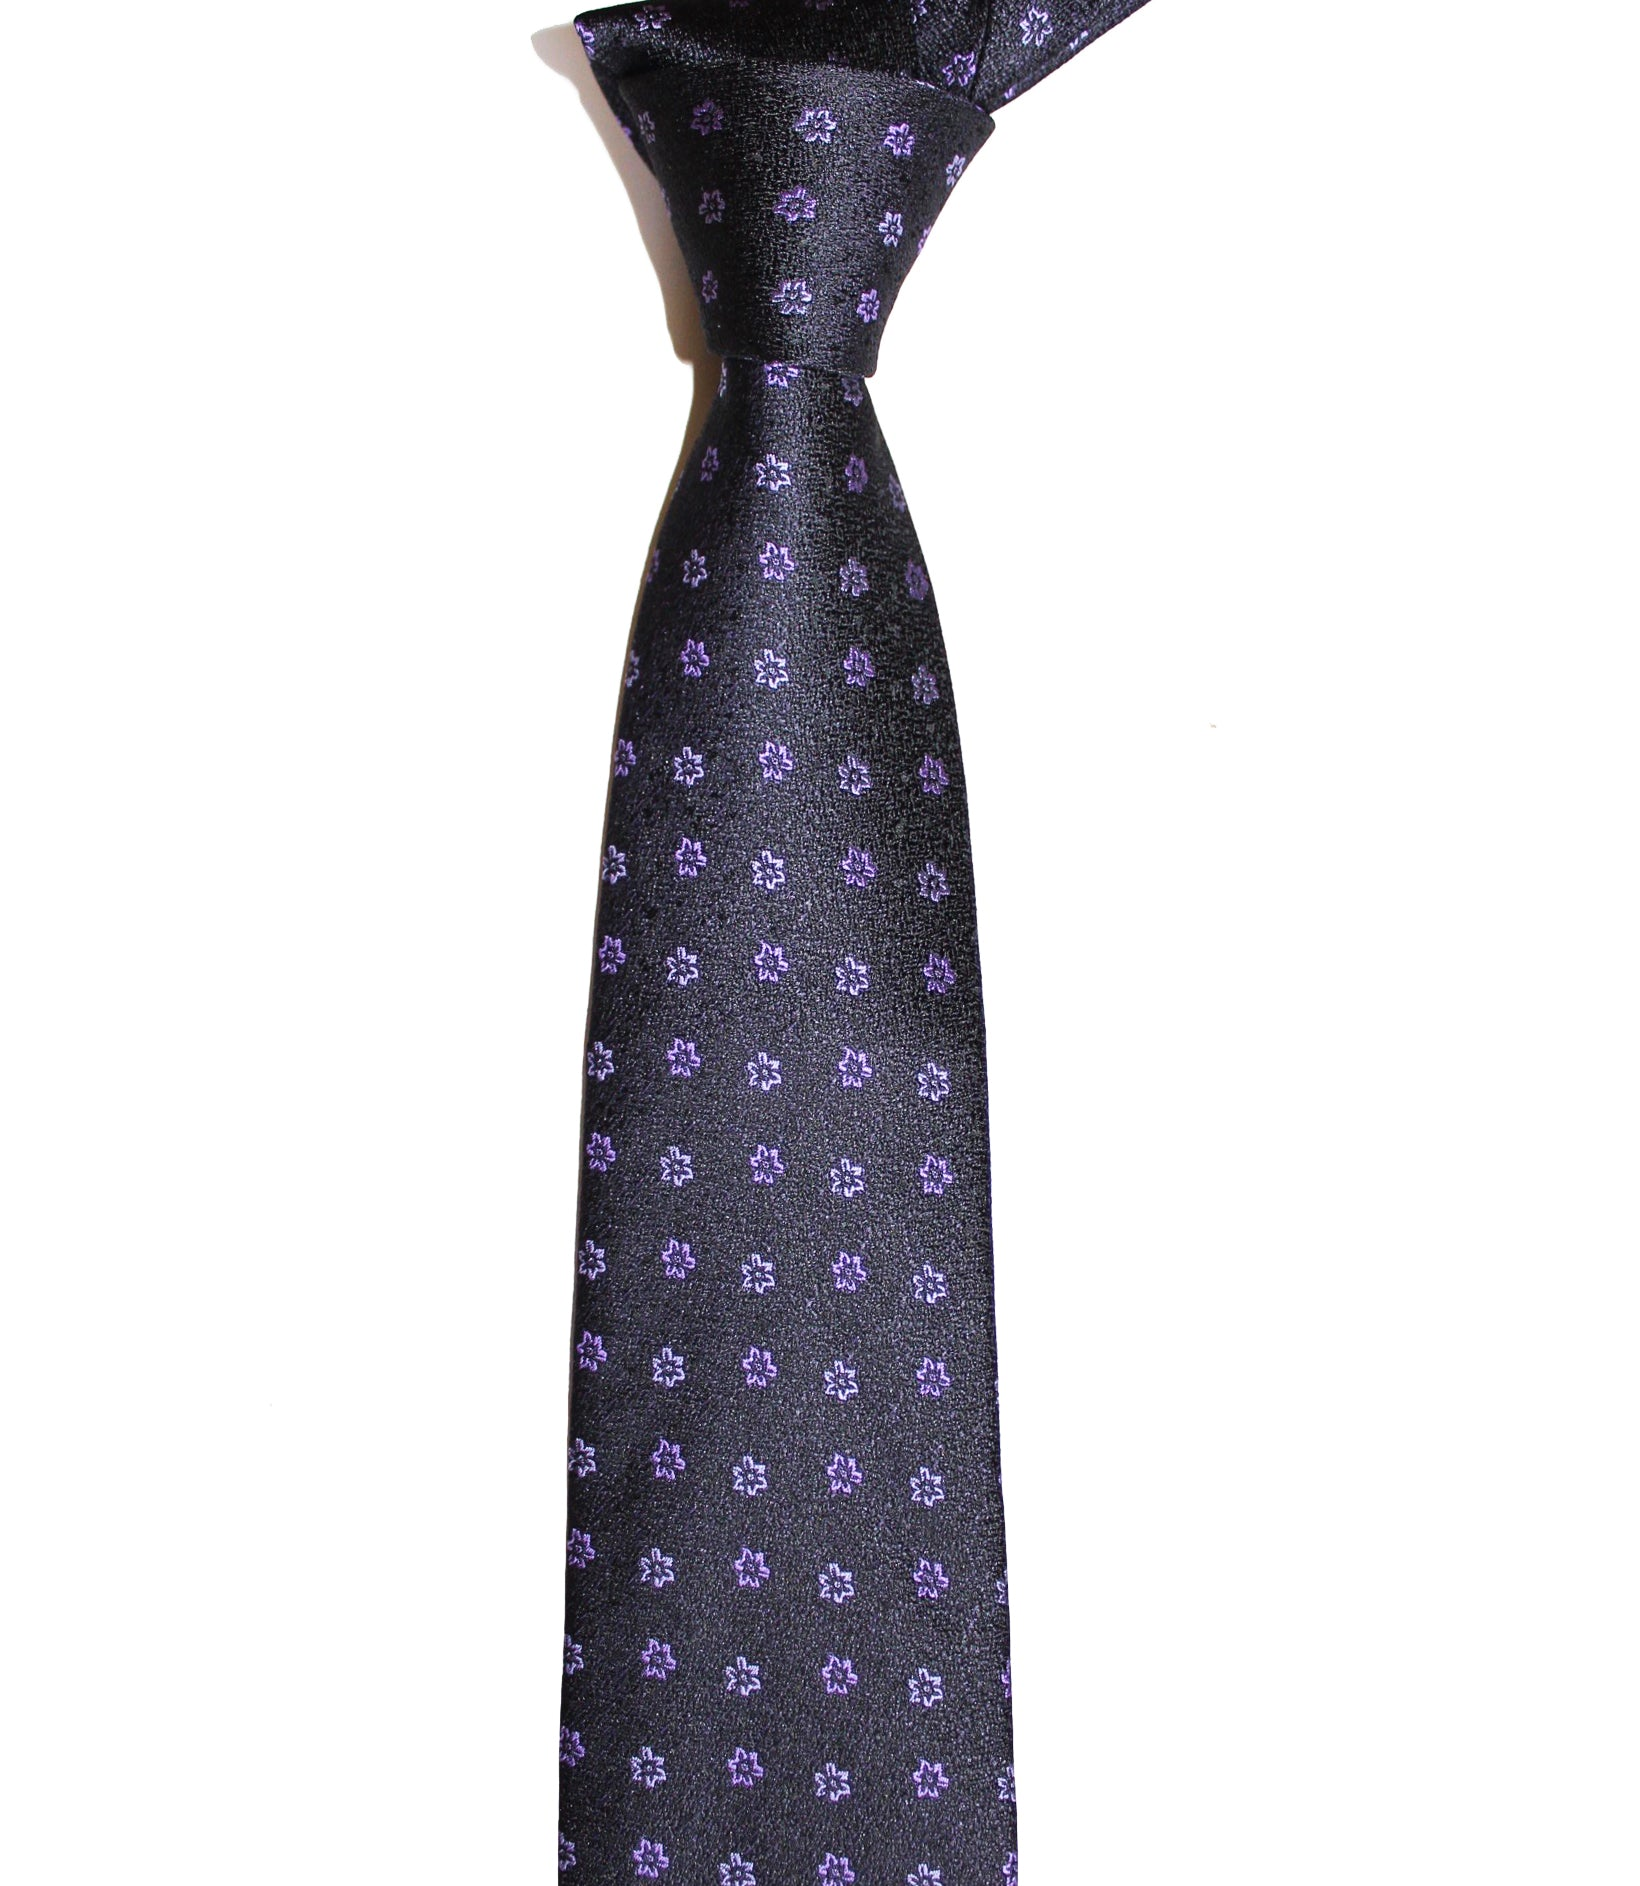 Ying Cai Norrian Tie /Black 1